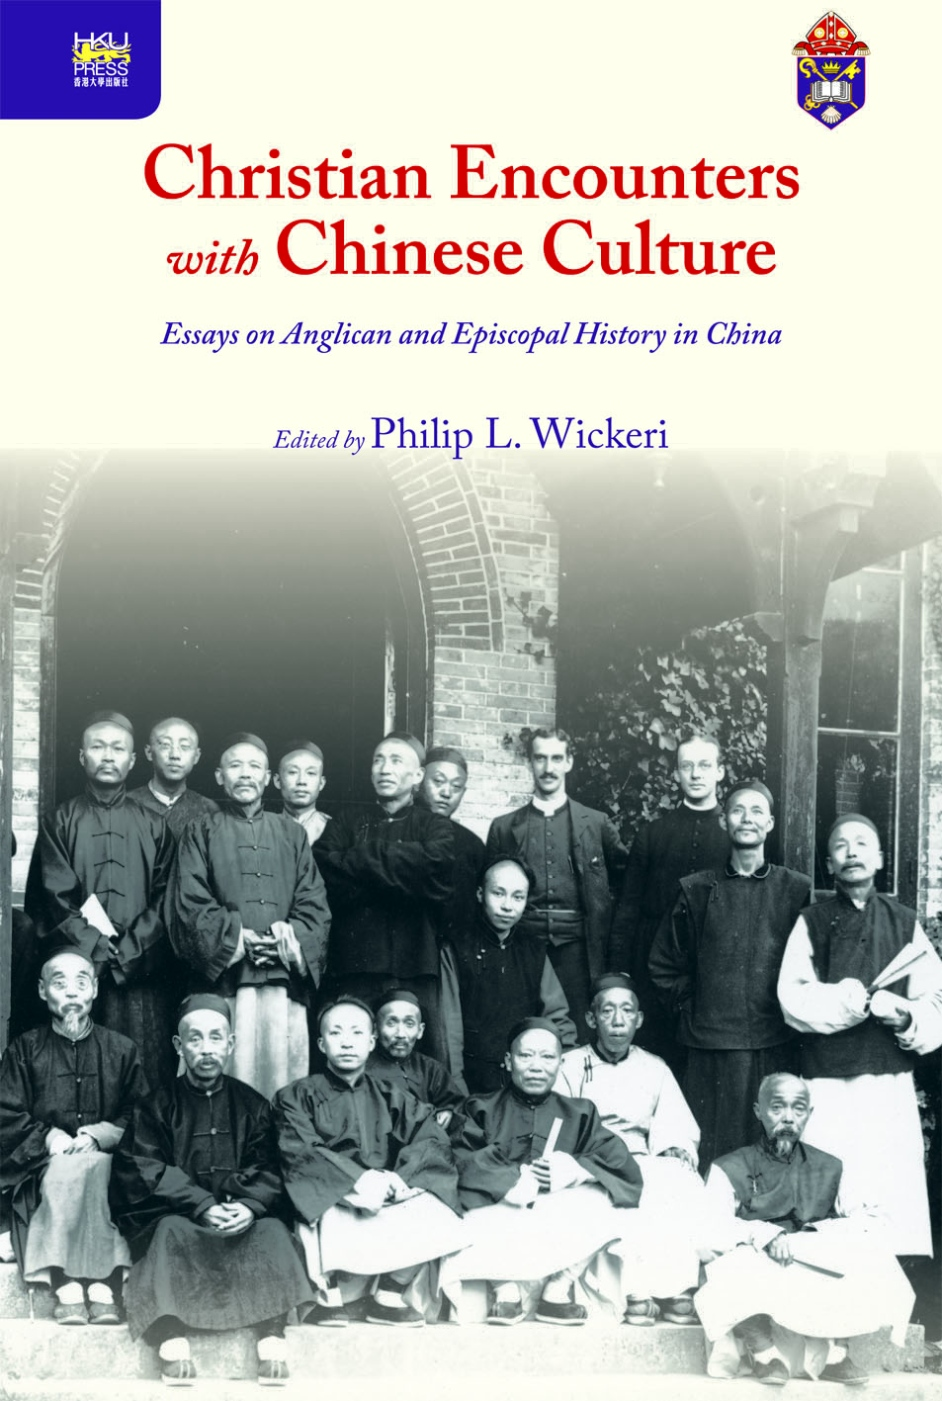 Christian Encounters with Chinese Culture:Essays on Anglican and Episcopal History in China